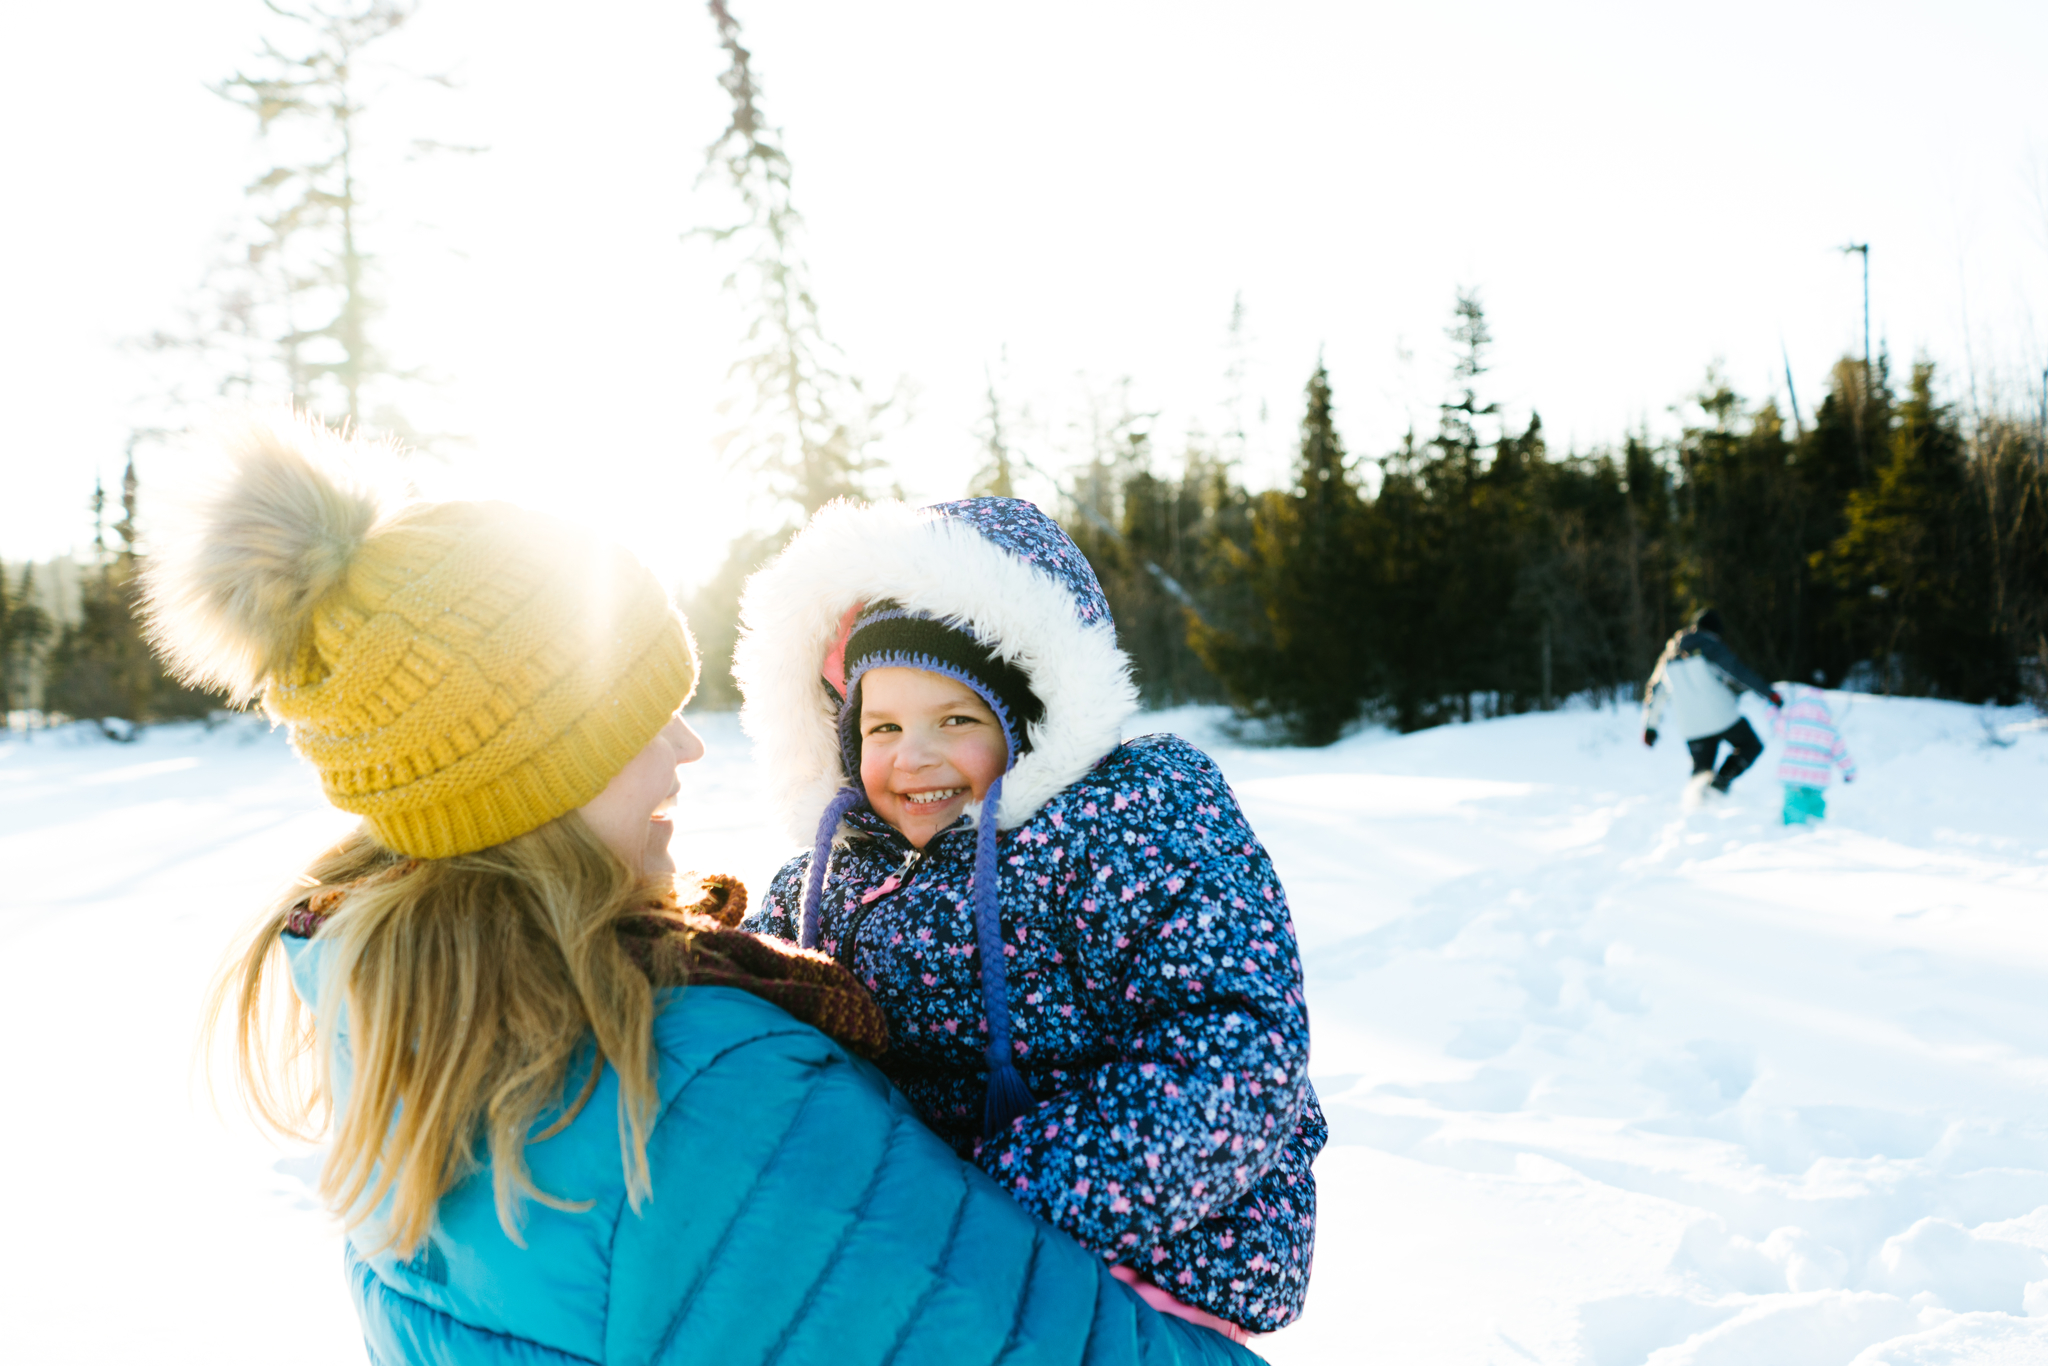 Mother and Daughter play in the snow in winter